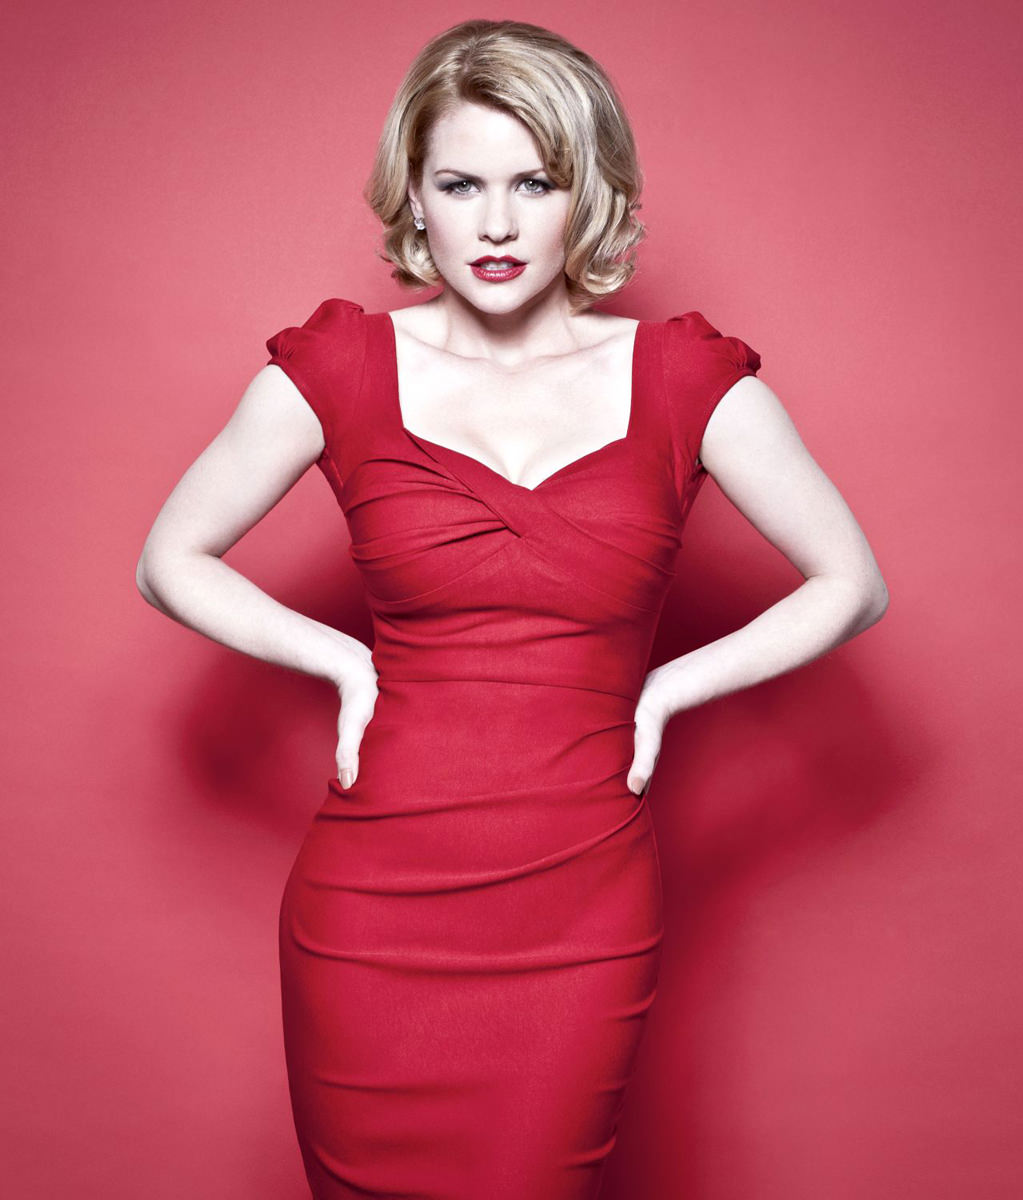 Carrie Keagan Photo Gallery